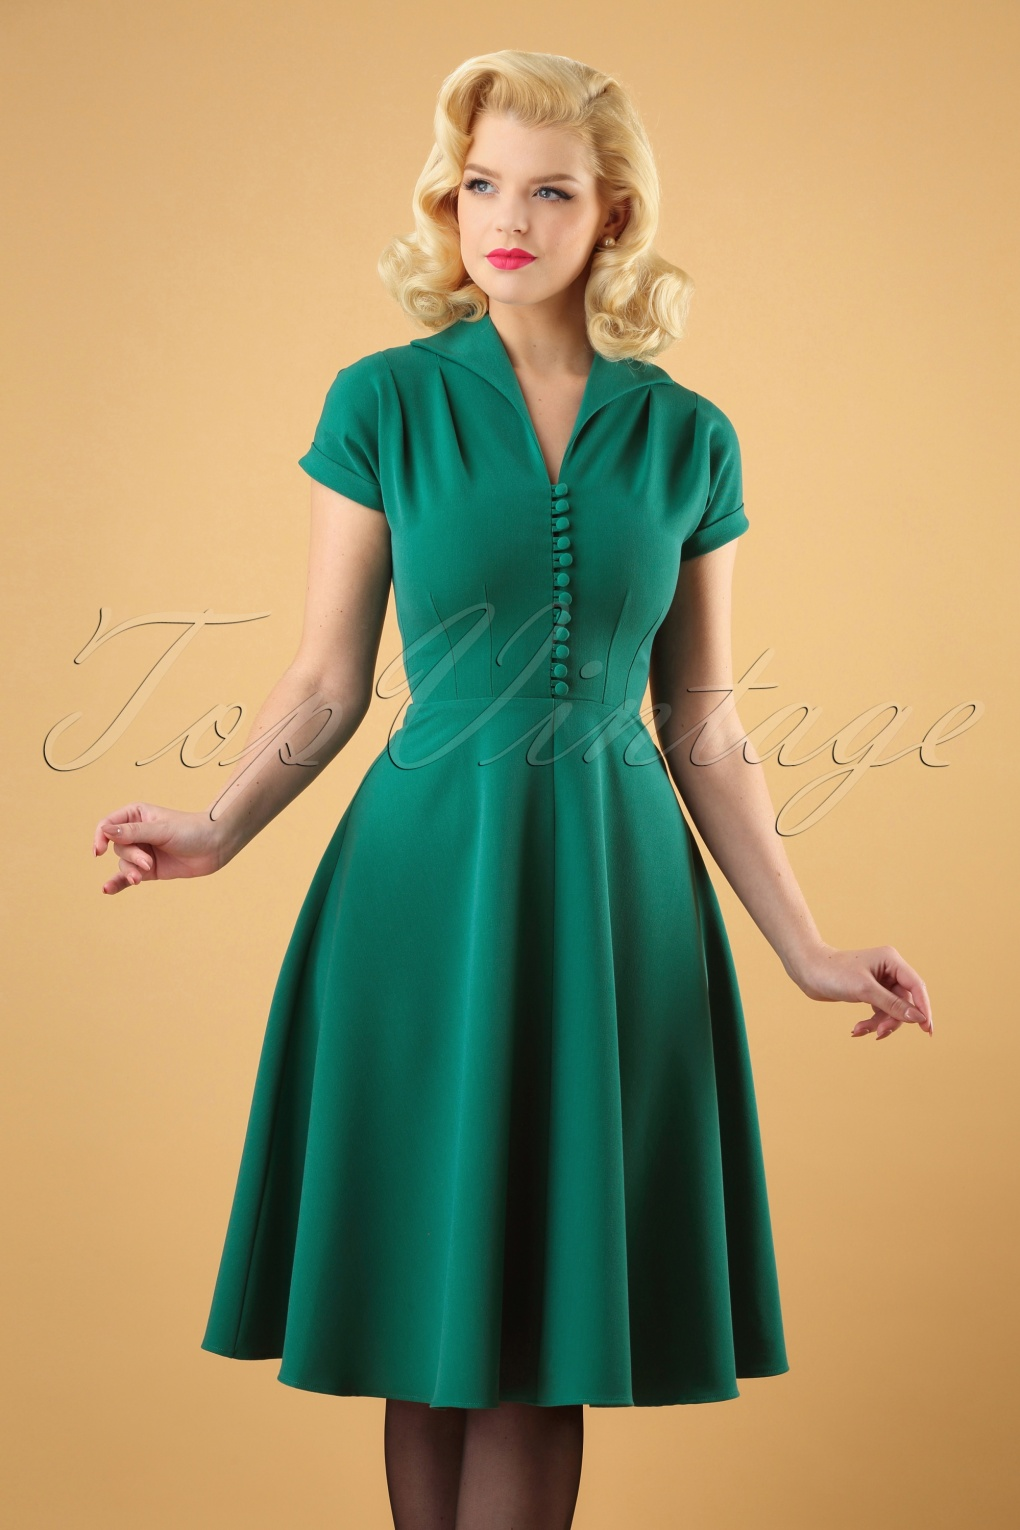 500 Vintage Style Dresses for Sale 40s Pretty Hostess Dress in Green £66.65 AT vintagedancer.com